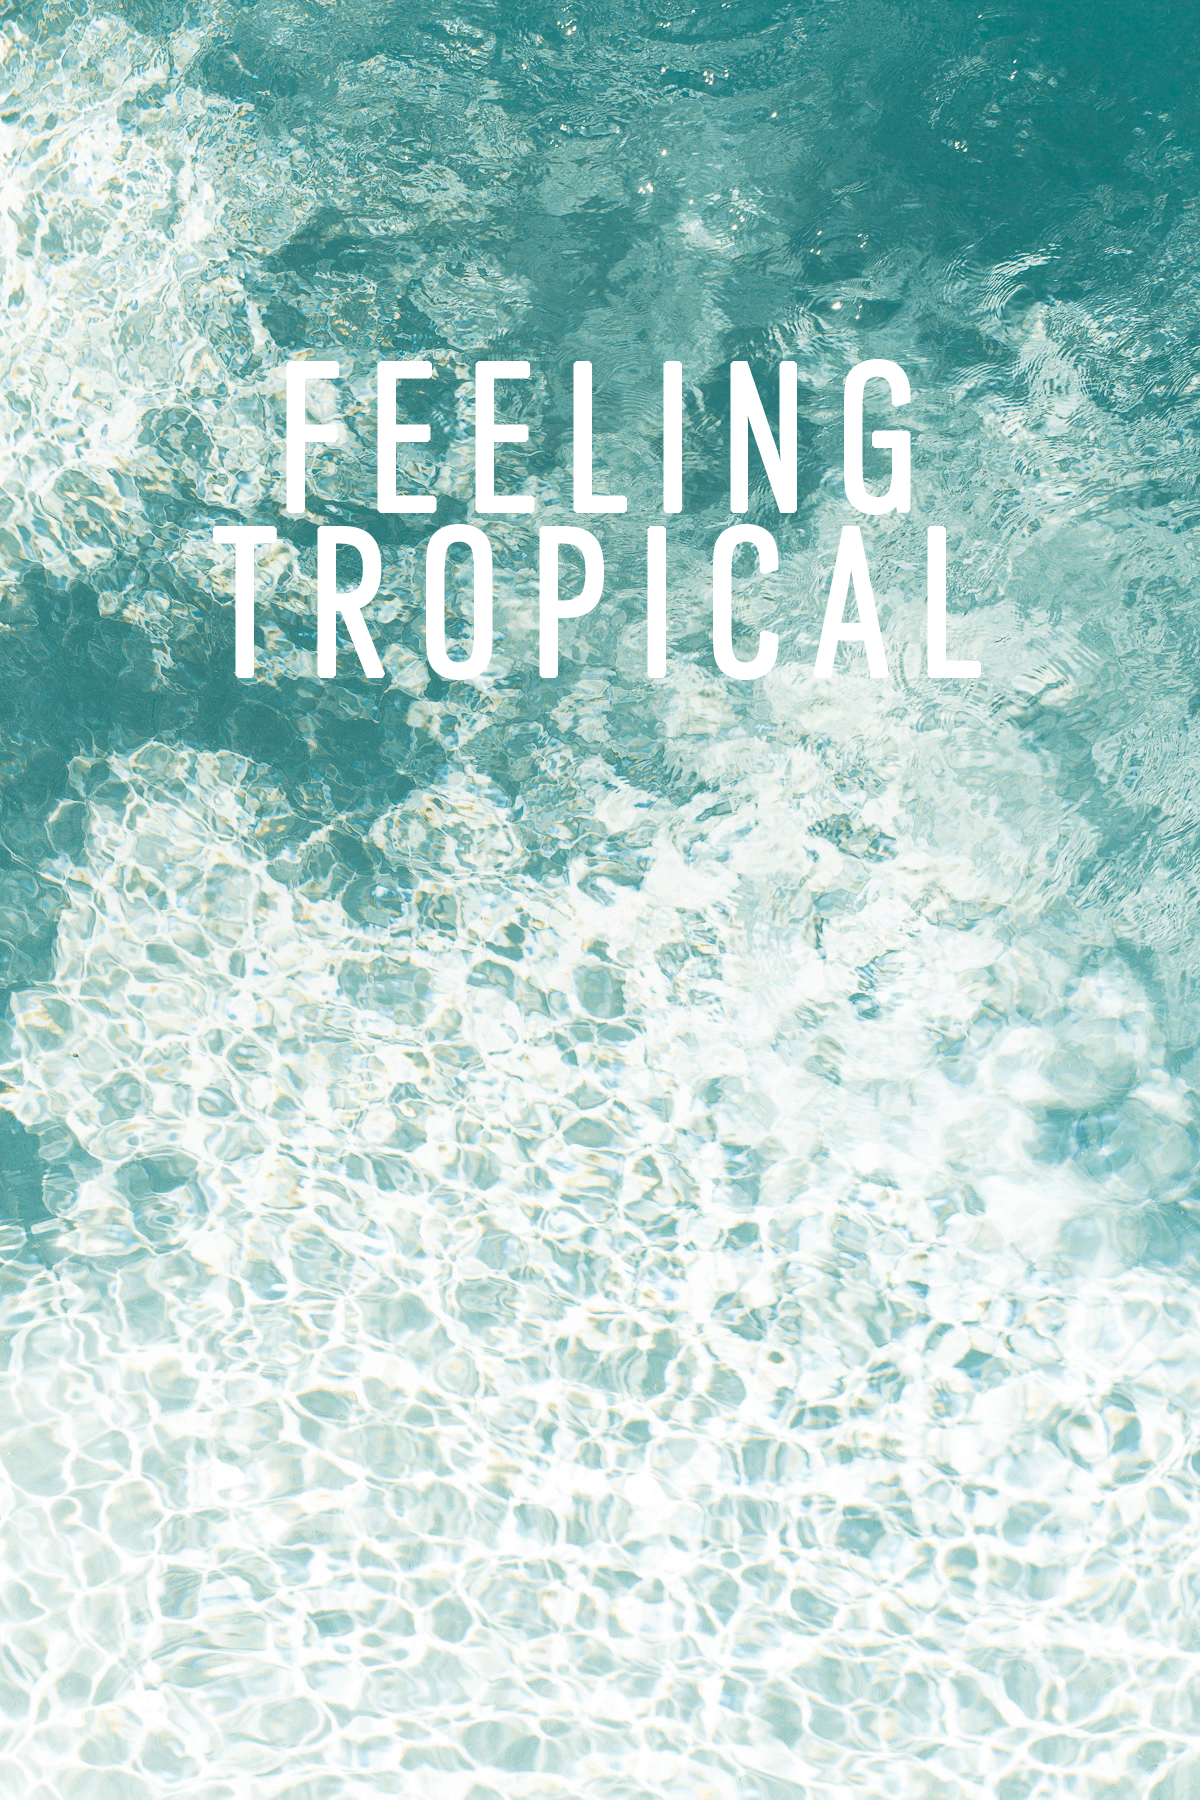 Cute Wallpapers Pineapple Watermelon Poolside Cool Our Summer Playlist On Spotify Amp Summer